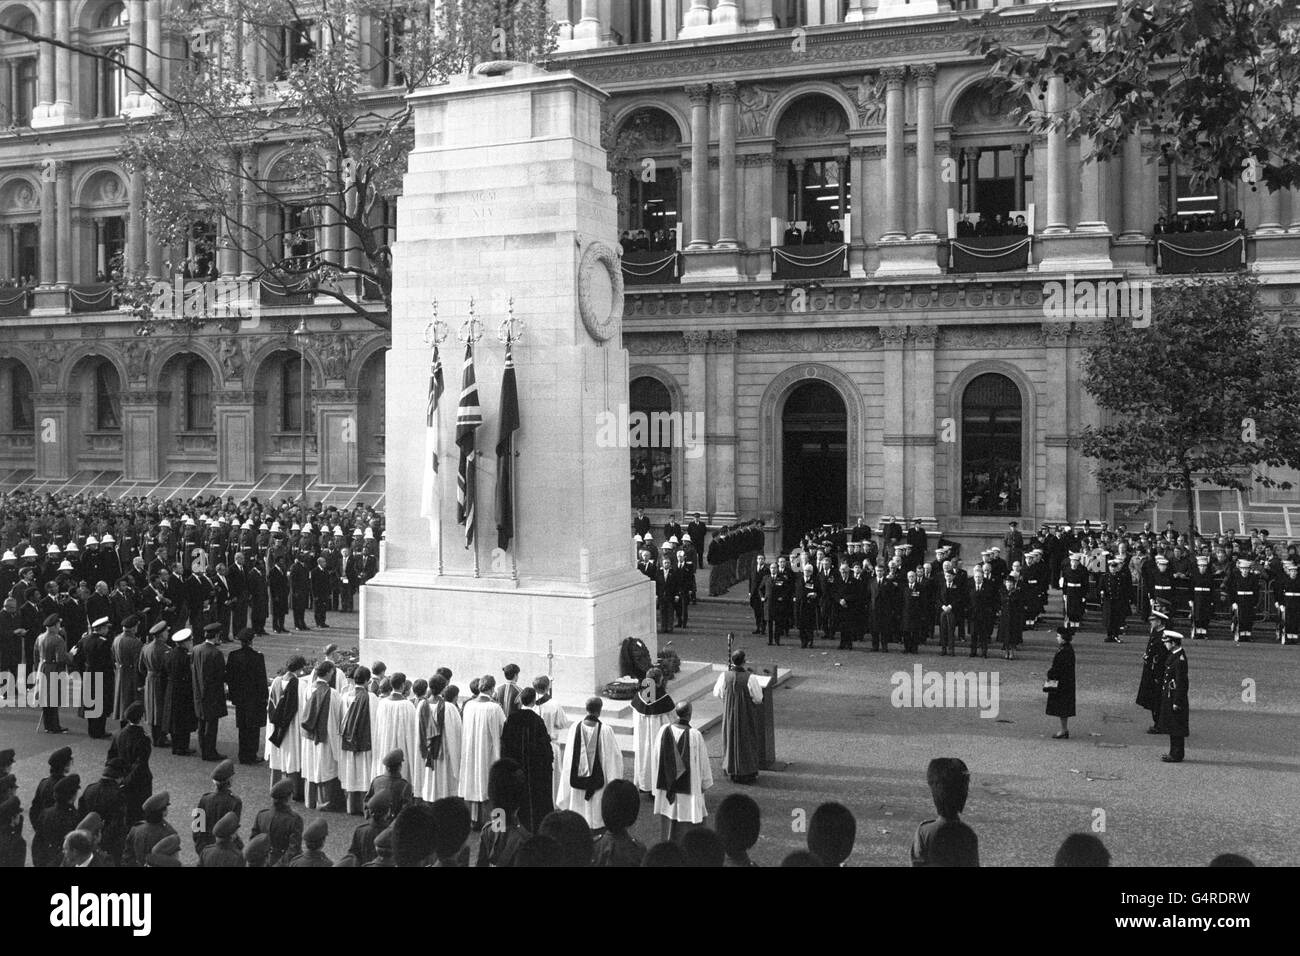 War - Remembrance Day - Cenotaph, London - Stock Image